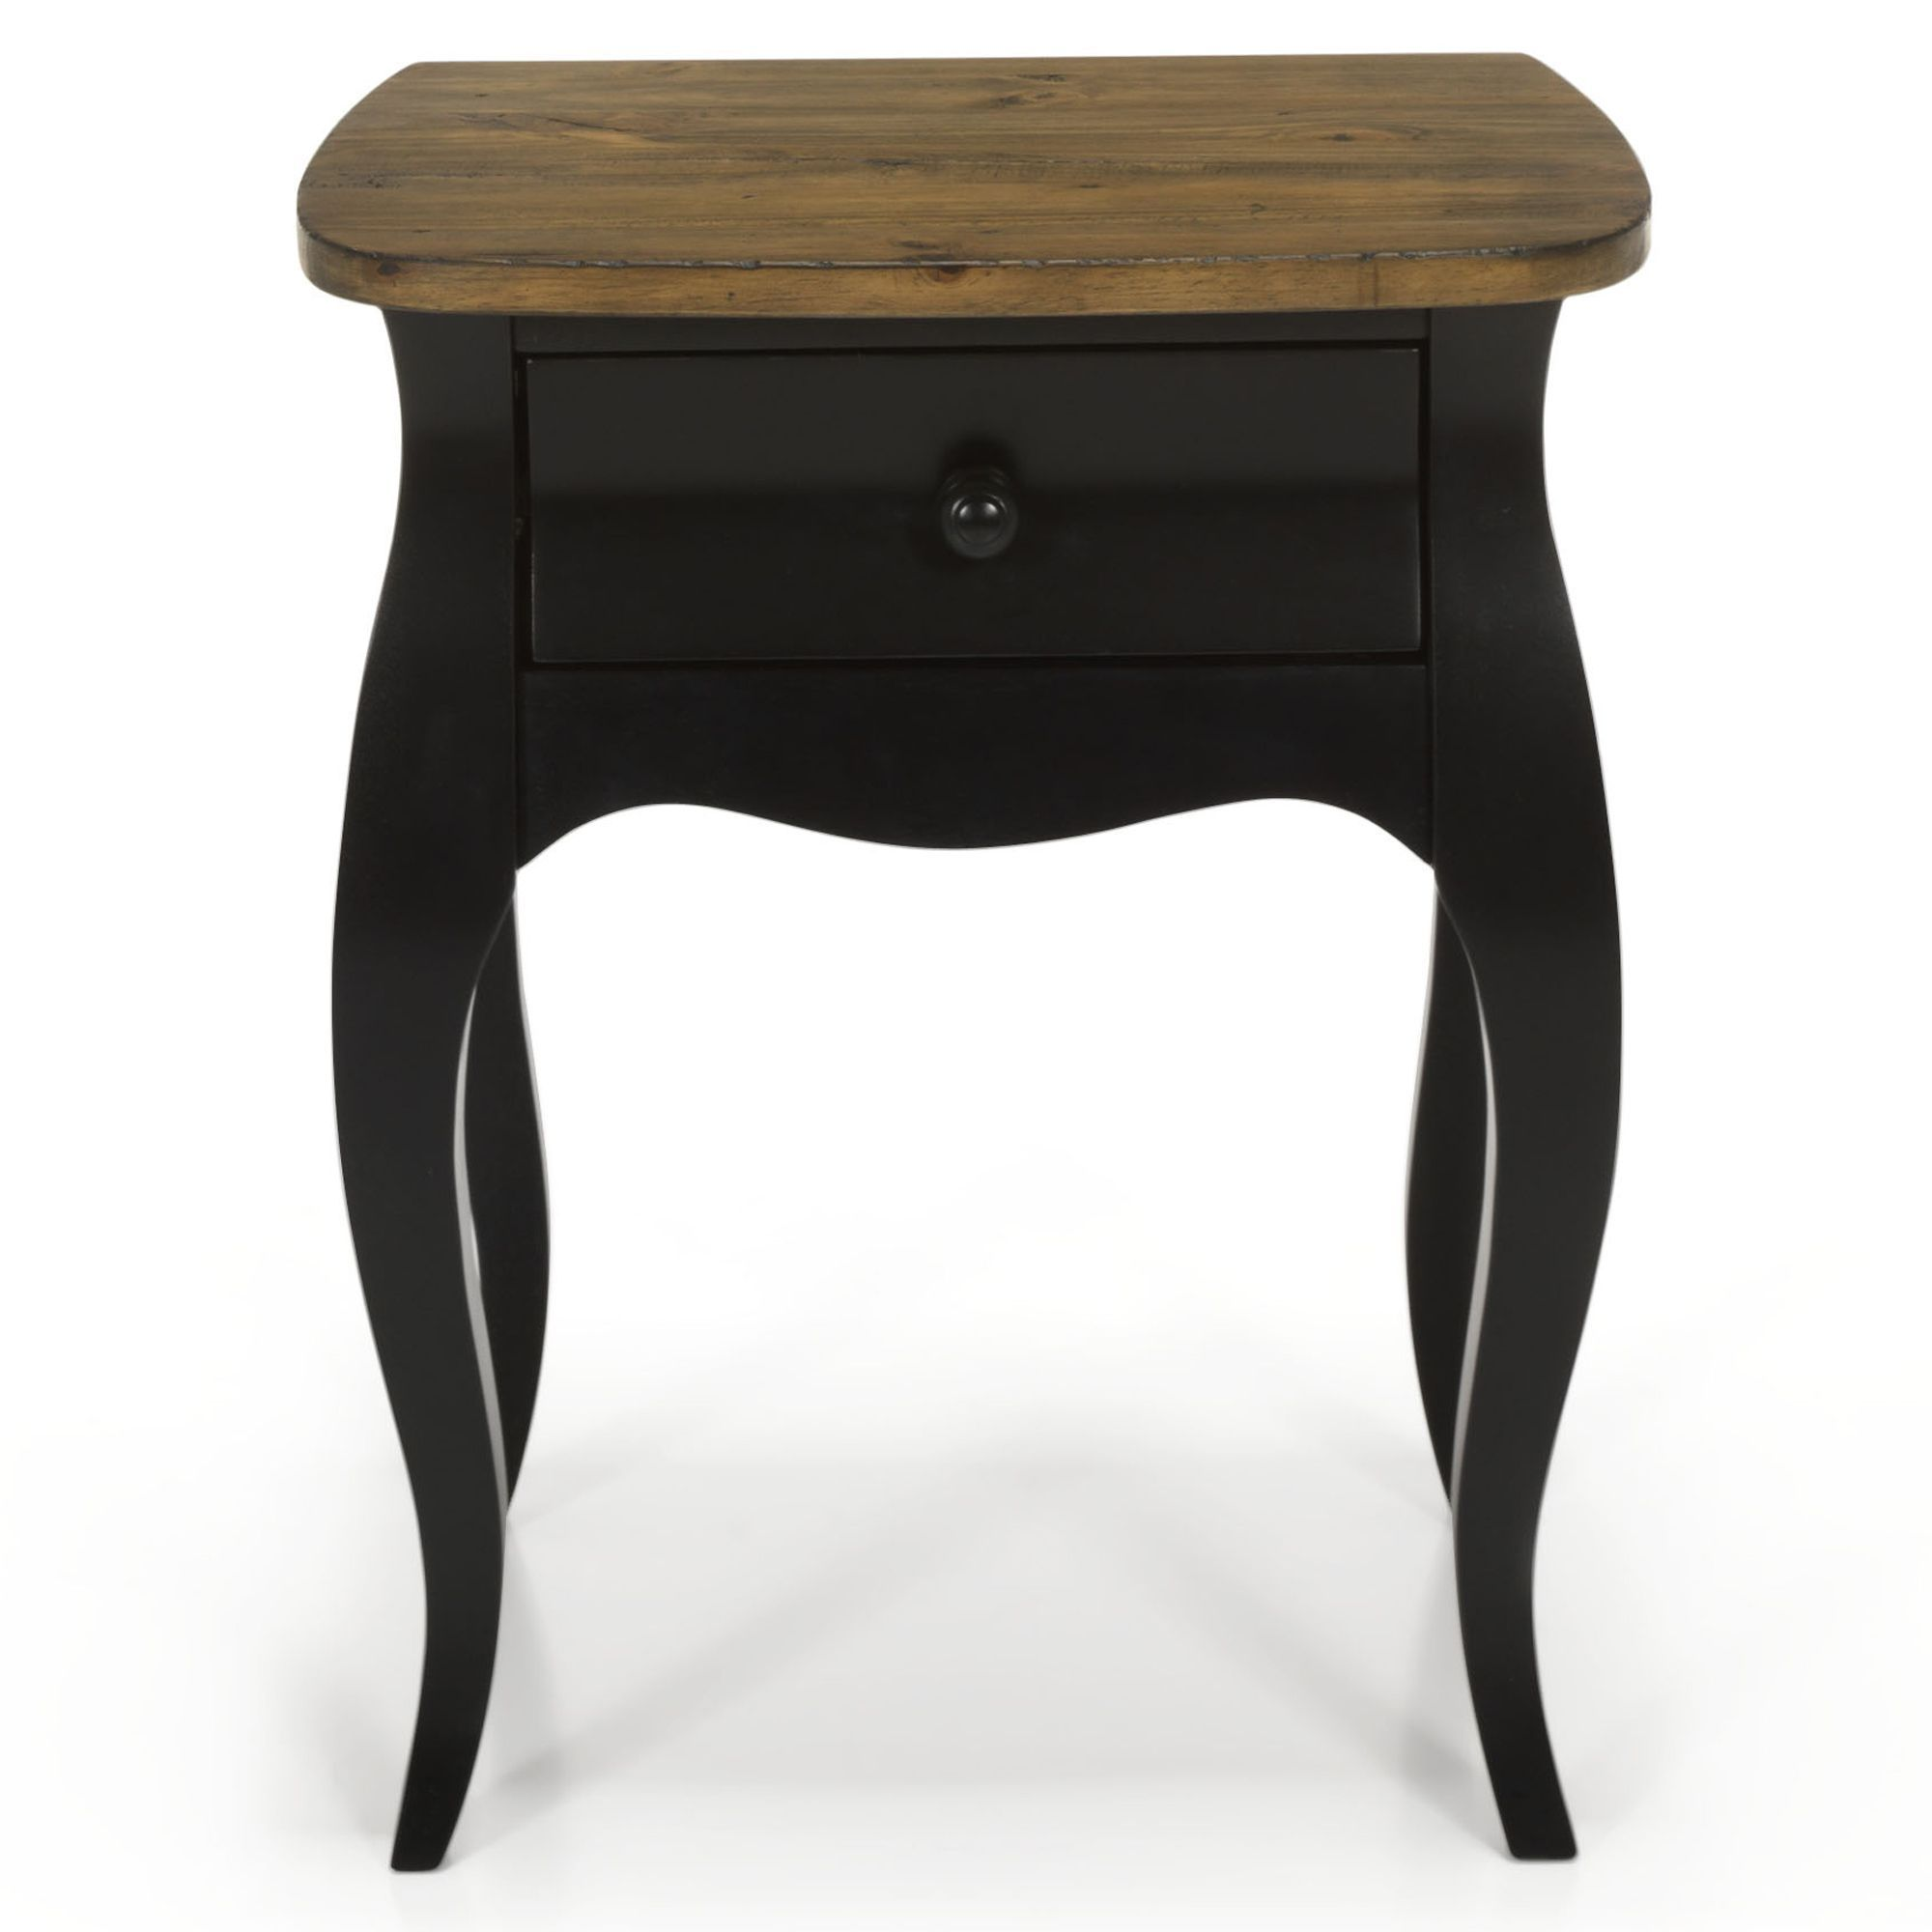 Chevet Romantique Noir 1 Tiroir Noir Avec Top Naturel Evelyn Les Tables De Chevet Chambre Decorati Mobilier De Salon Table De Chevet Alinea Meuble Deco